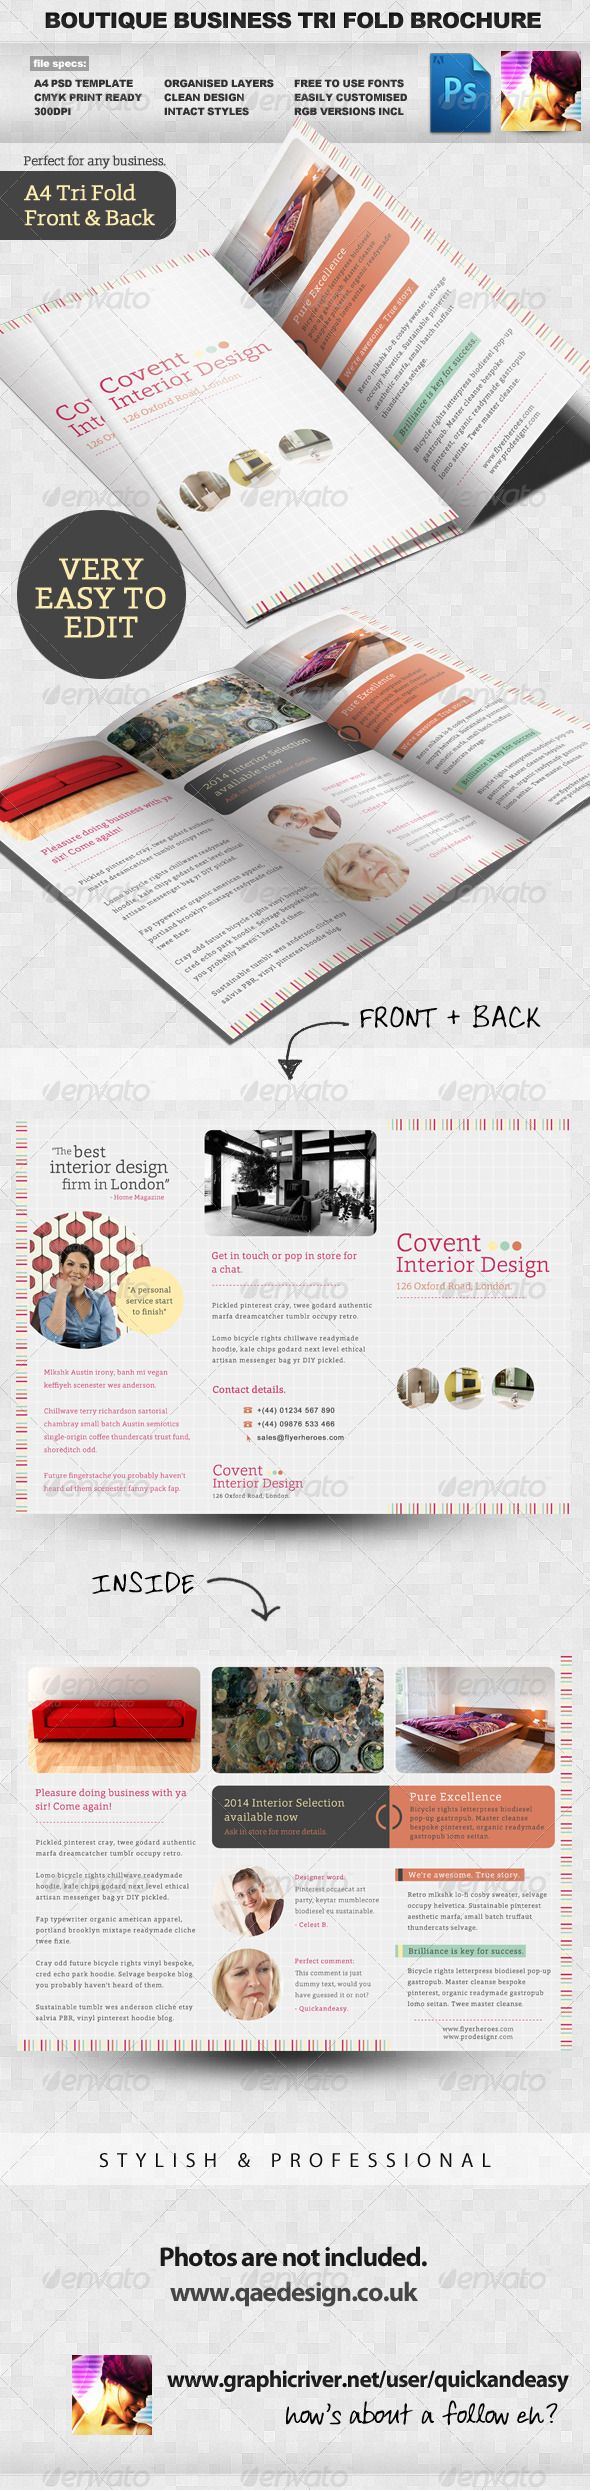 Best TriFold Brochure Ideas Images On Pinterest Brochure - Sales brochure templates